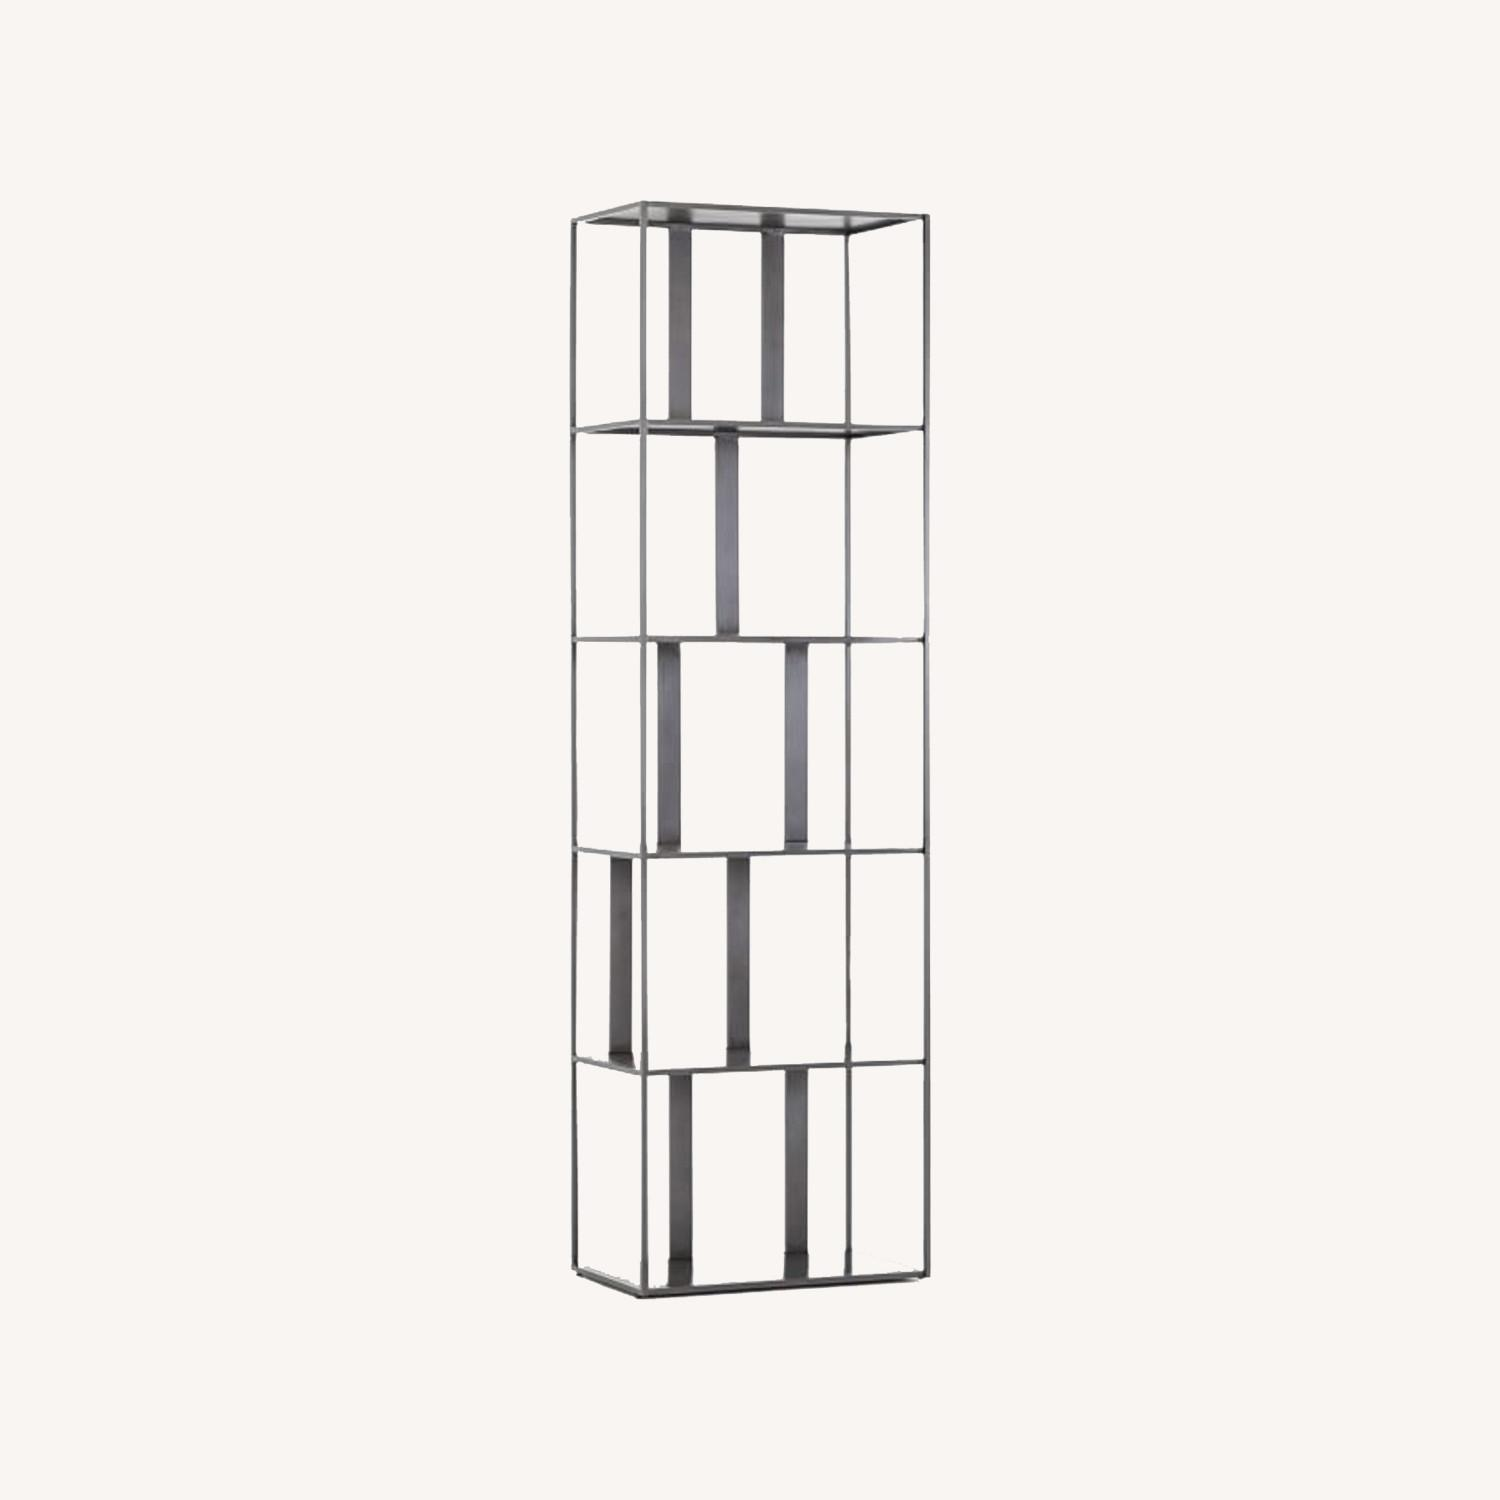 West Elm Modern Industrial Narrow Bookshelf - image-0